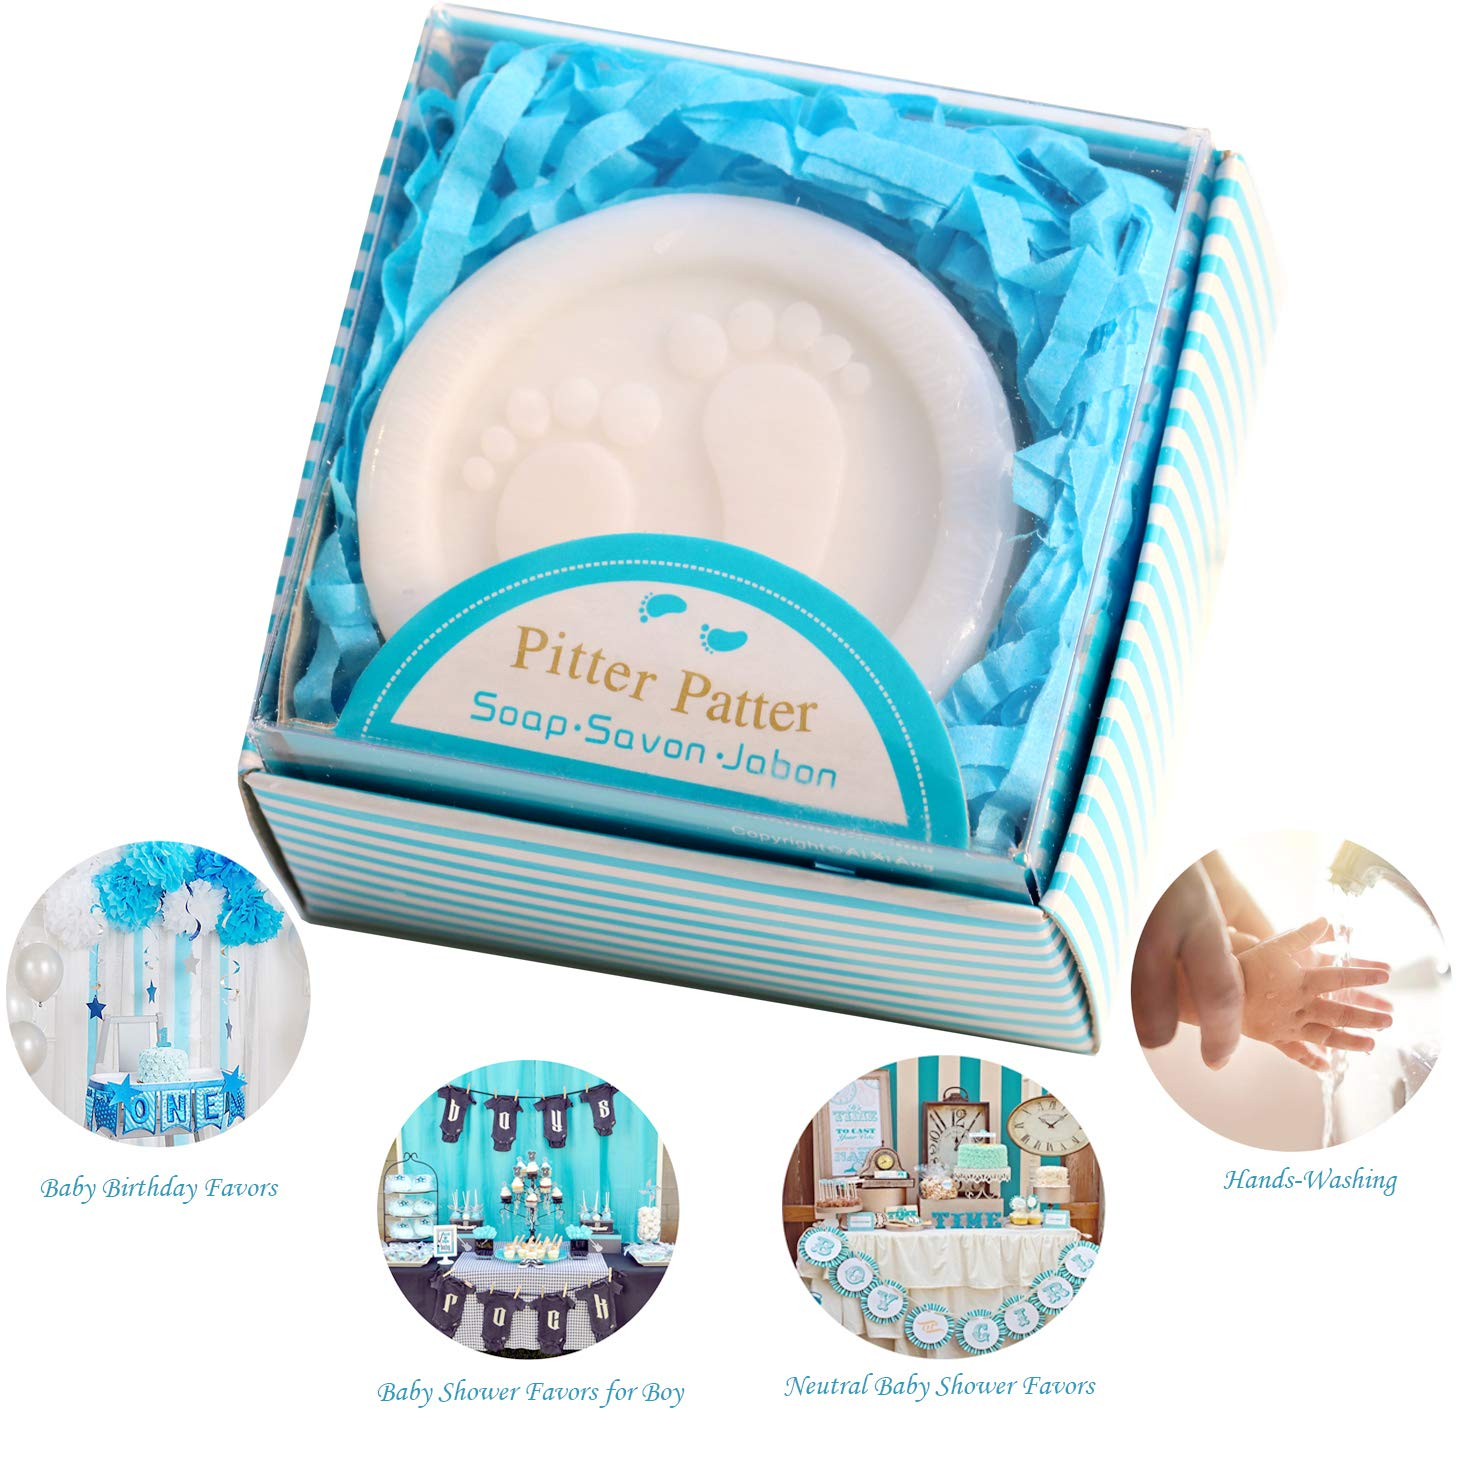 Cutest Handmade Blue Pitter Patter Soap Favors Exquisite Gift Packaging for Baby Boy Baby Shower Favors 24 Pack